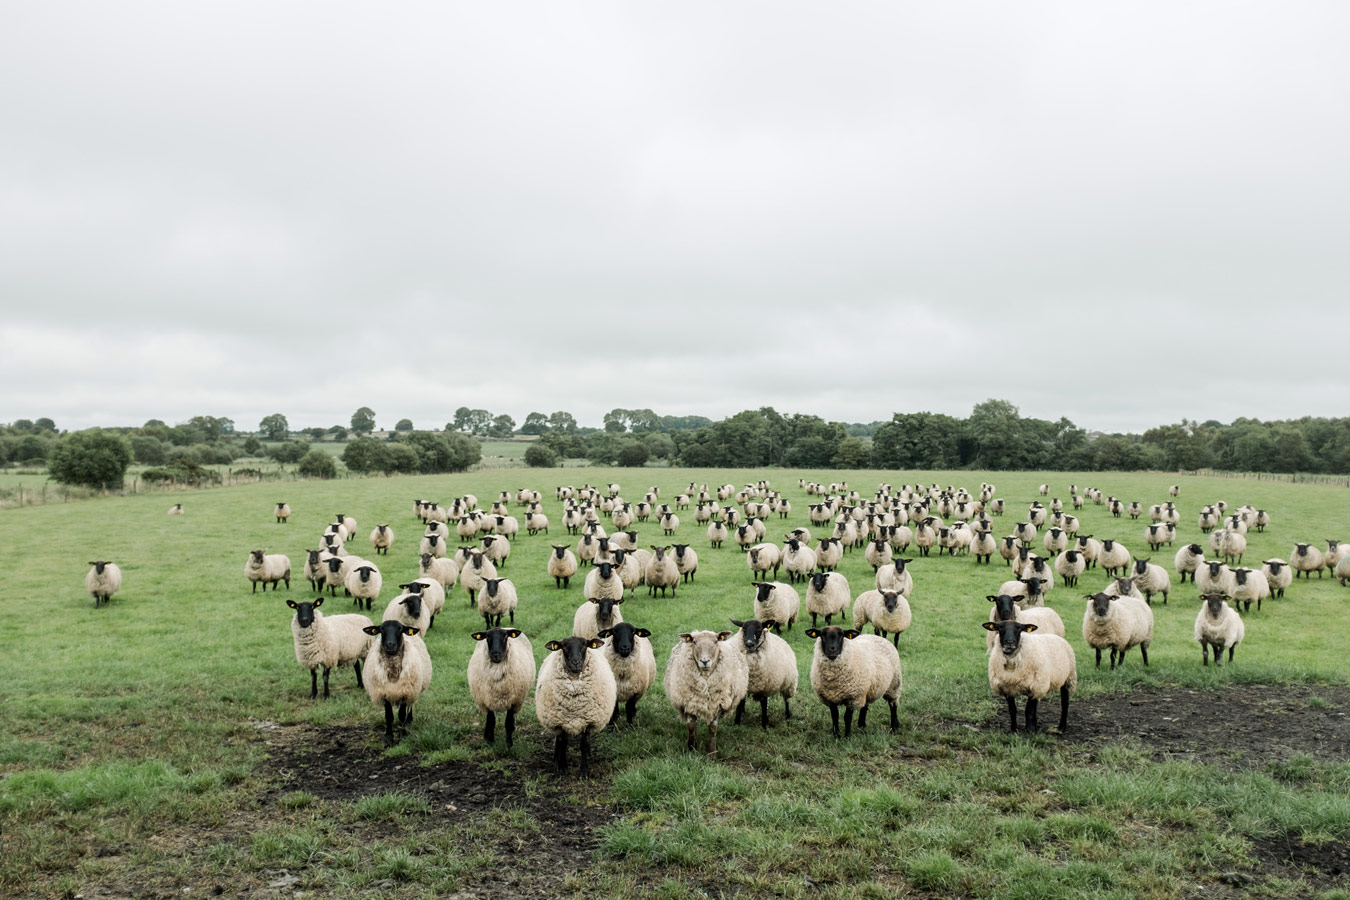 Counting Sheep, © Erin Mcginn, Warwick, RI, United States, First Place, World In Focus - The Ultimate Travel Photography Competition